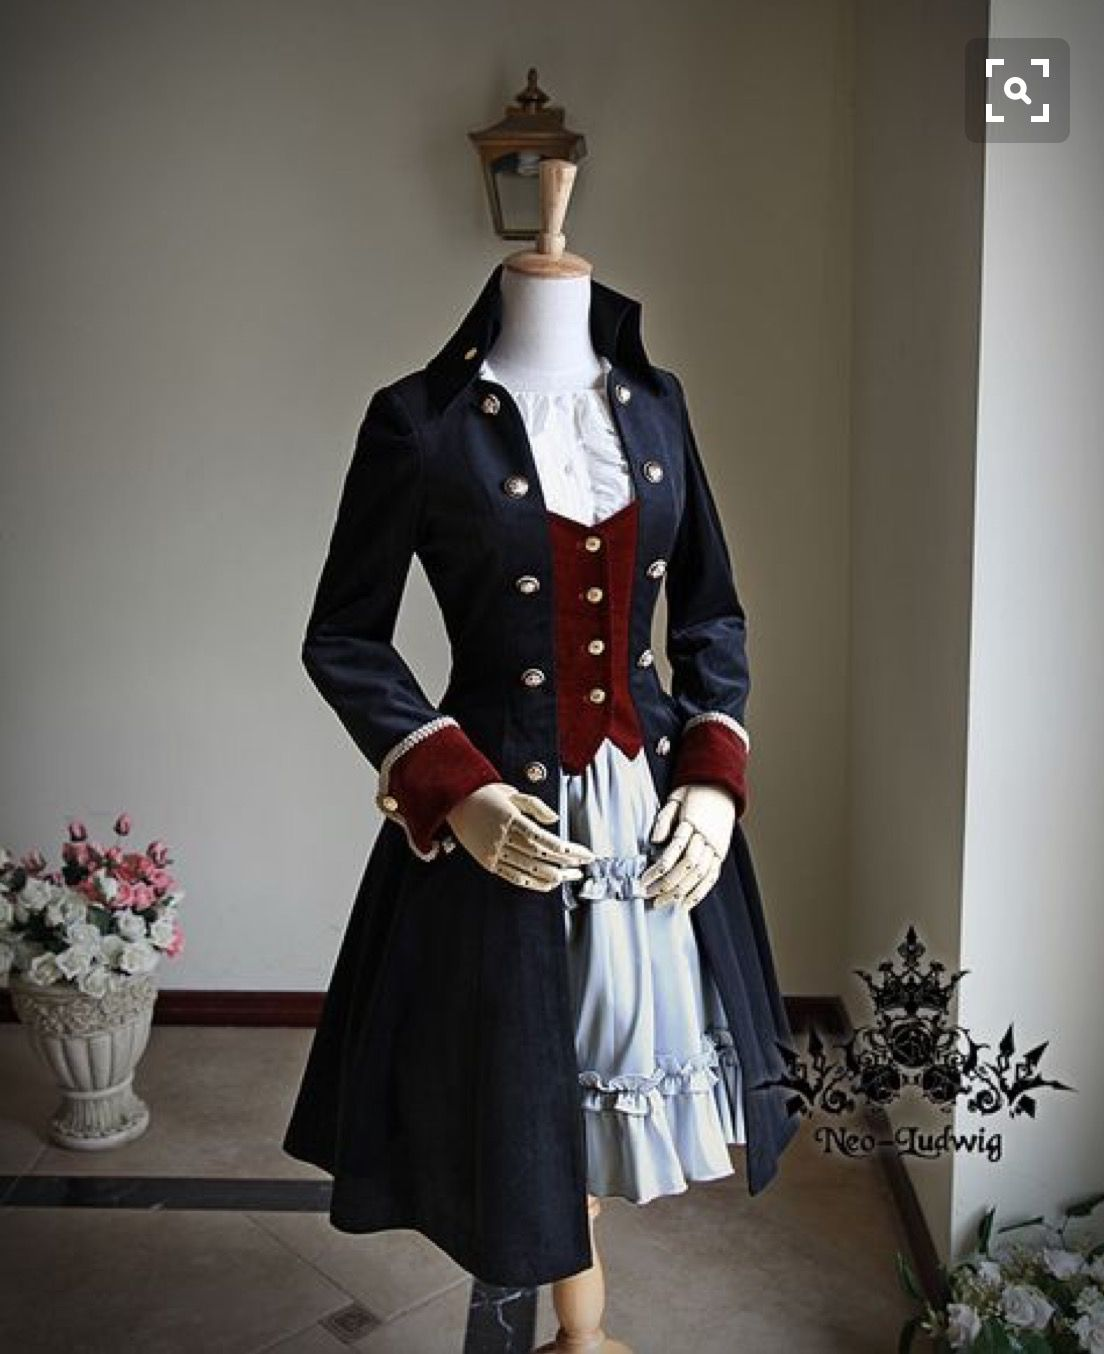 Assassinus creed iii ren faire pinterest costumes